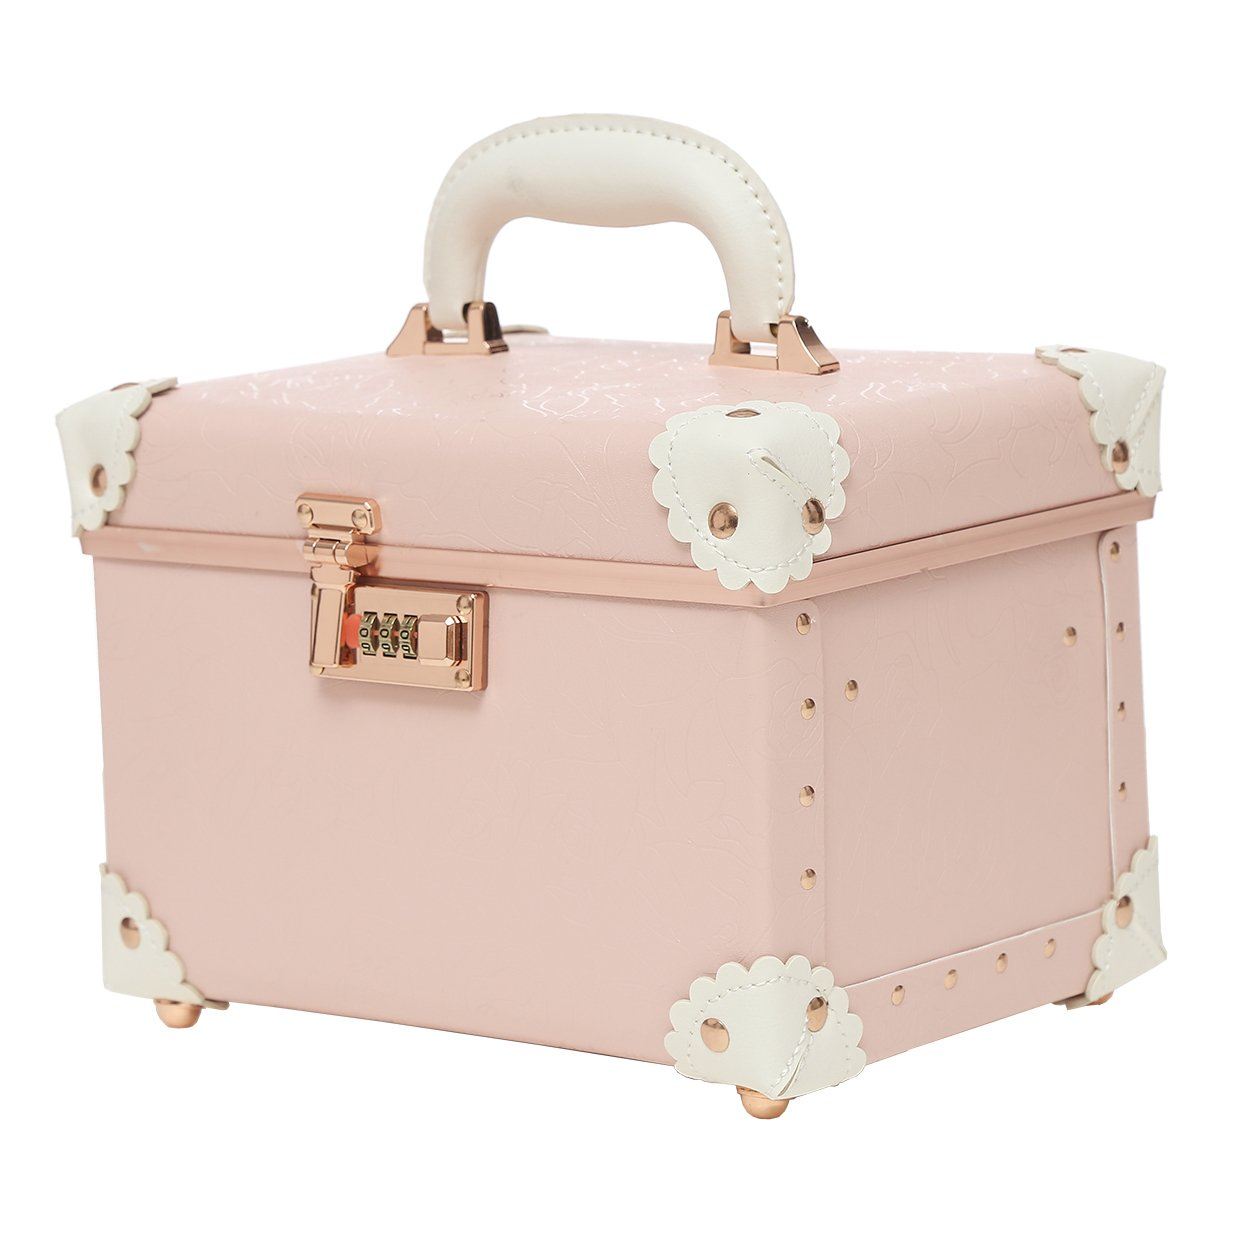 ad9153faa7b9 Portable Makeup Train Case Double Layer Cosmetic Bags Leather Toiletry Case  for Women Elegant Pink 10